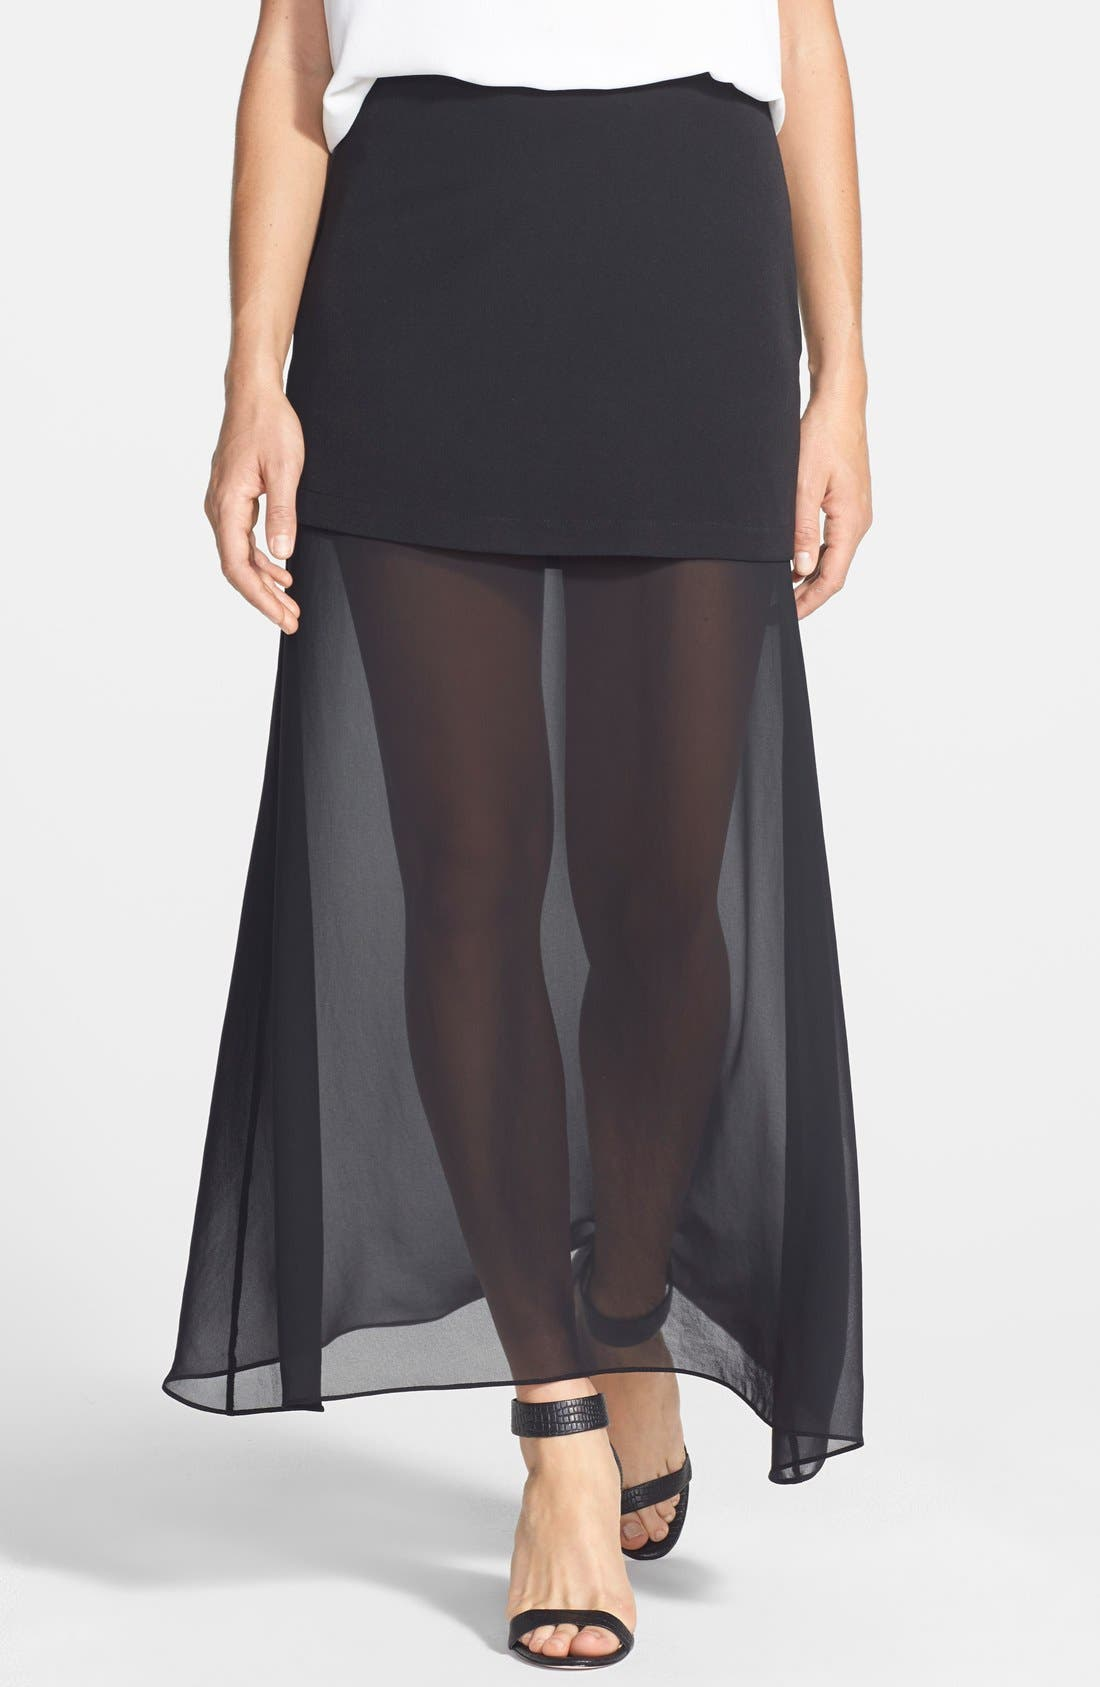 NIKKI RICH 'Hematite' Chiffon Underlayer Skirt, Main, color, 001